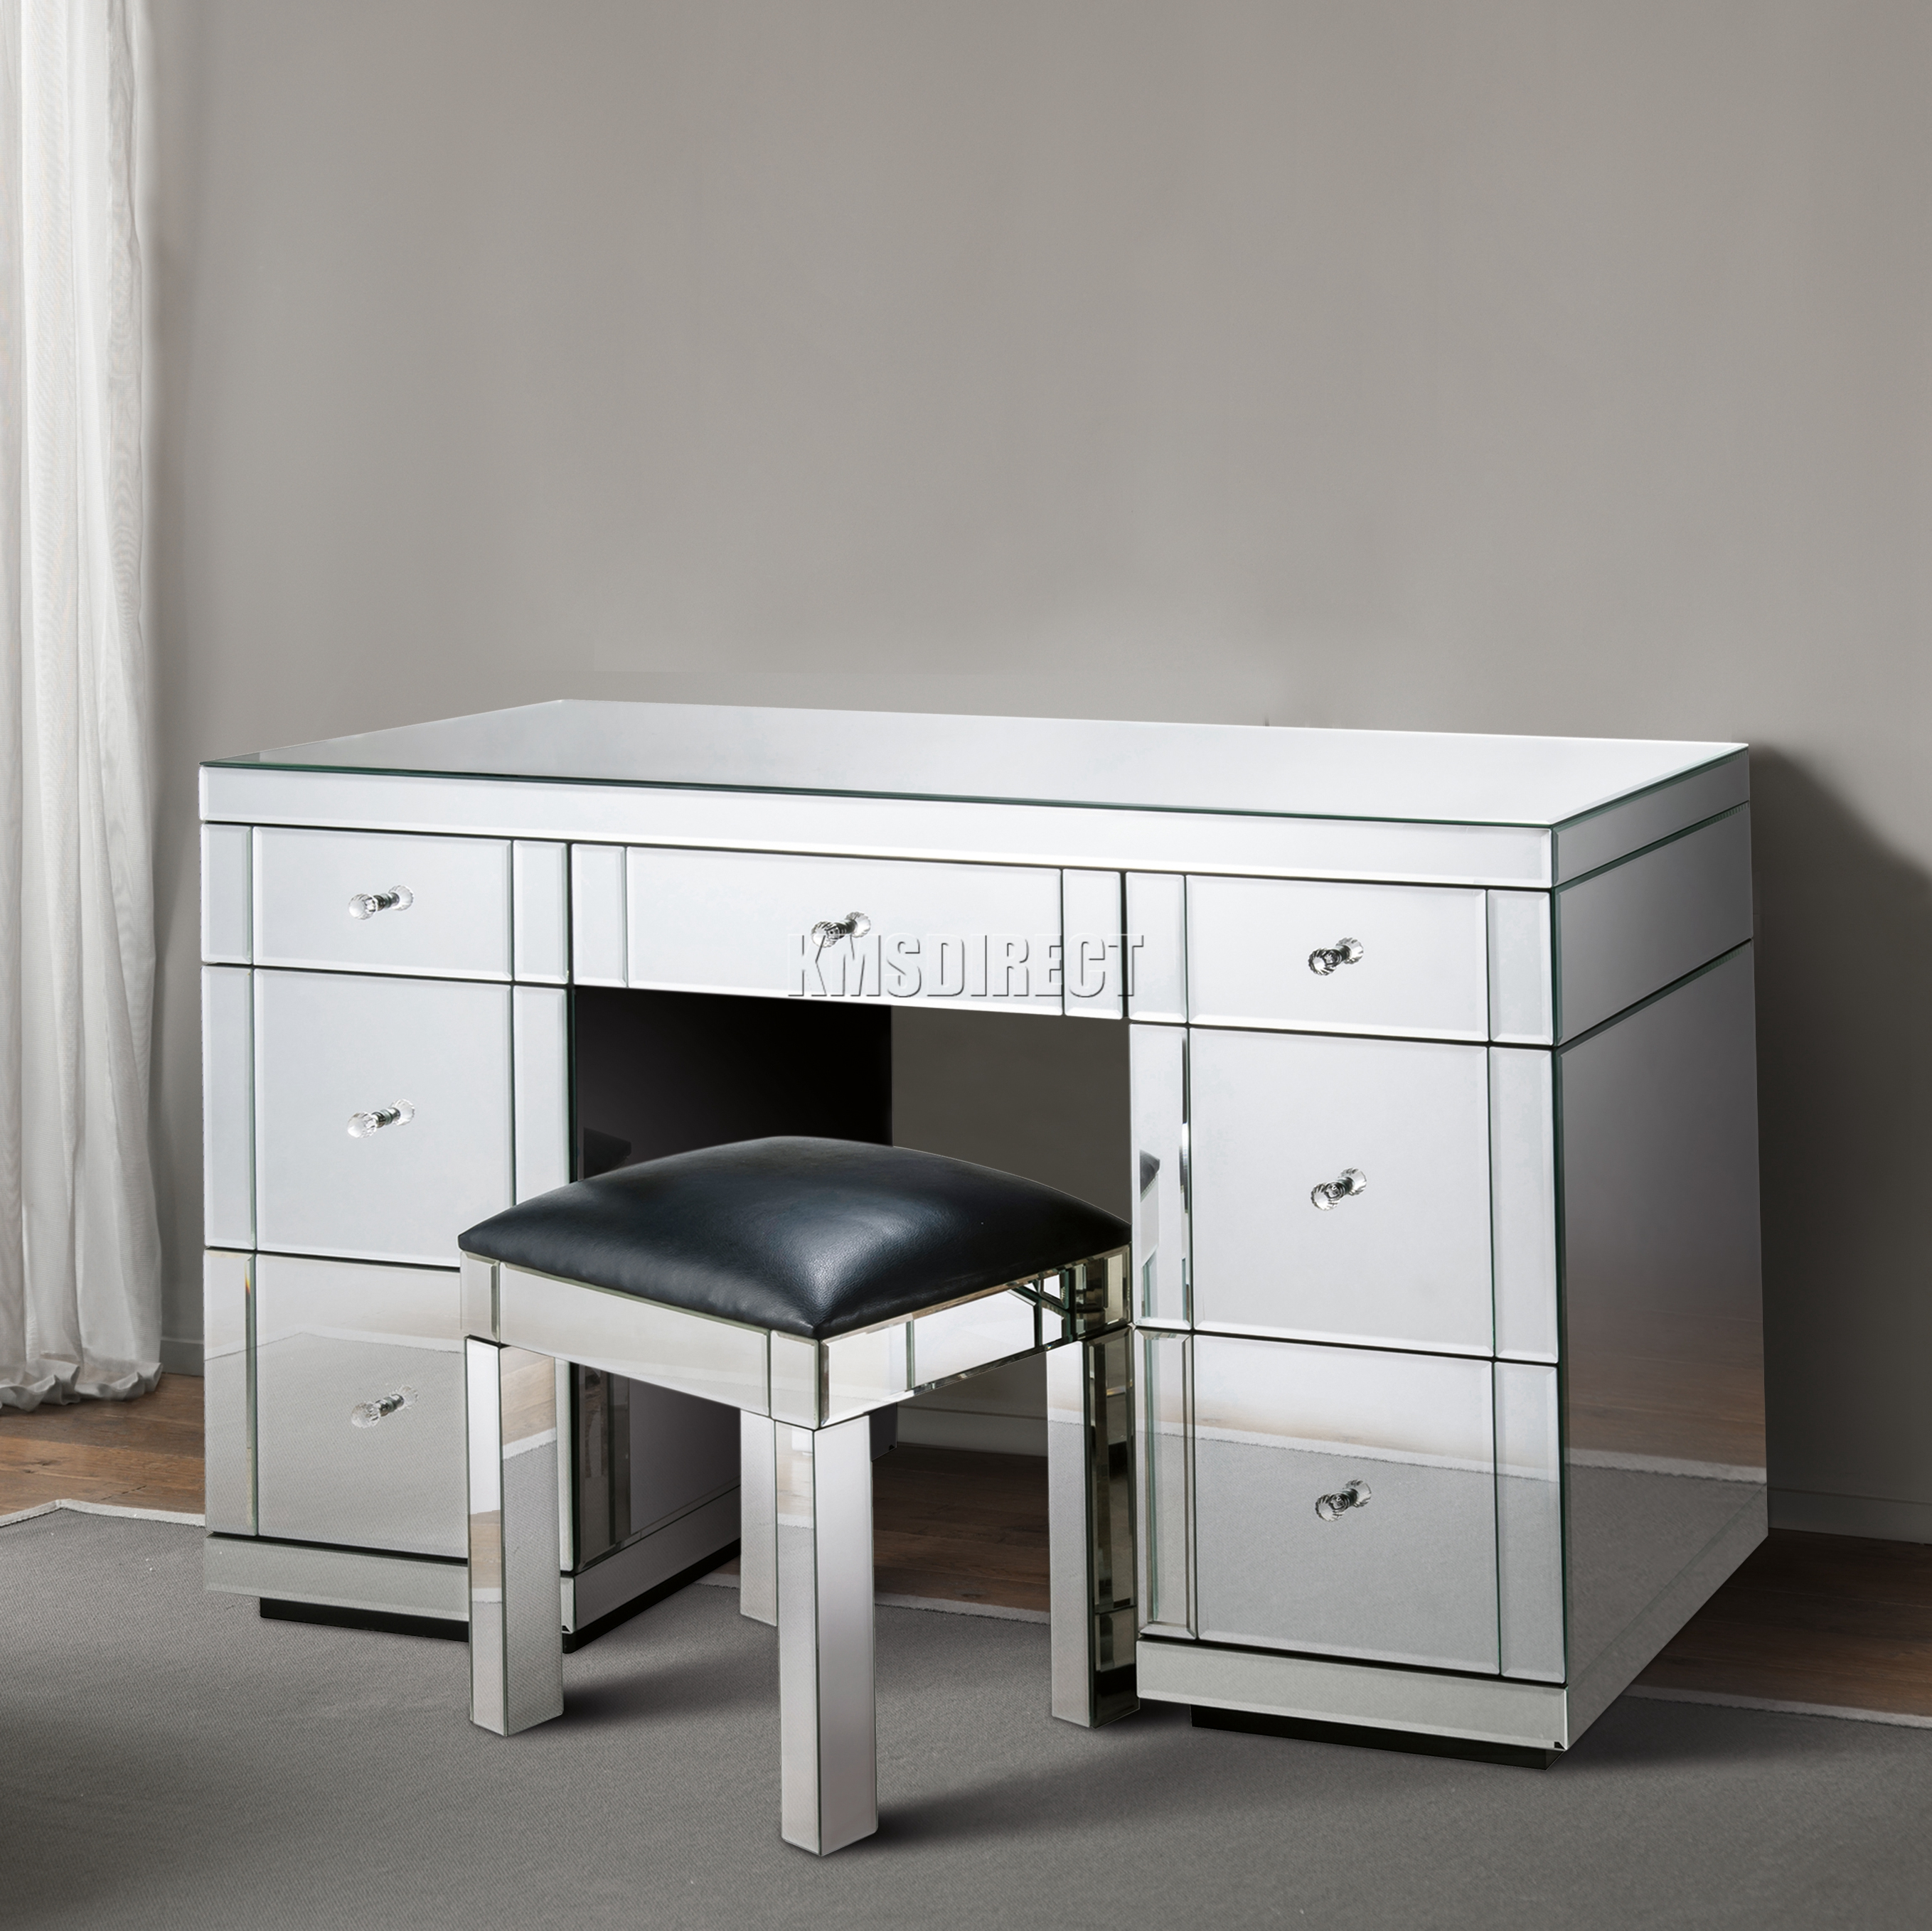 dressing room furniture. Sentinel FoxHunter Mirrored Furniture Glass 7 Drawer Dressing Table Console Bedroom MDT02 Room A